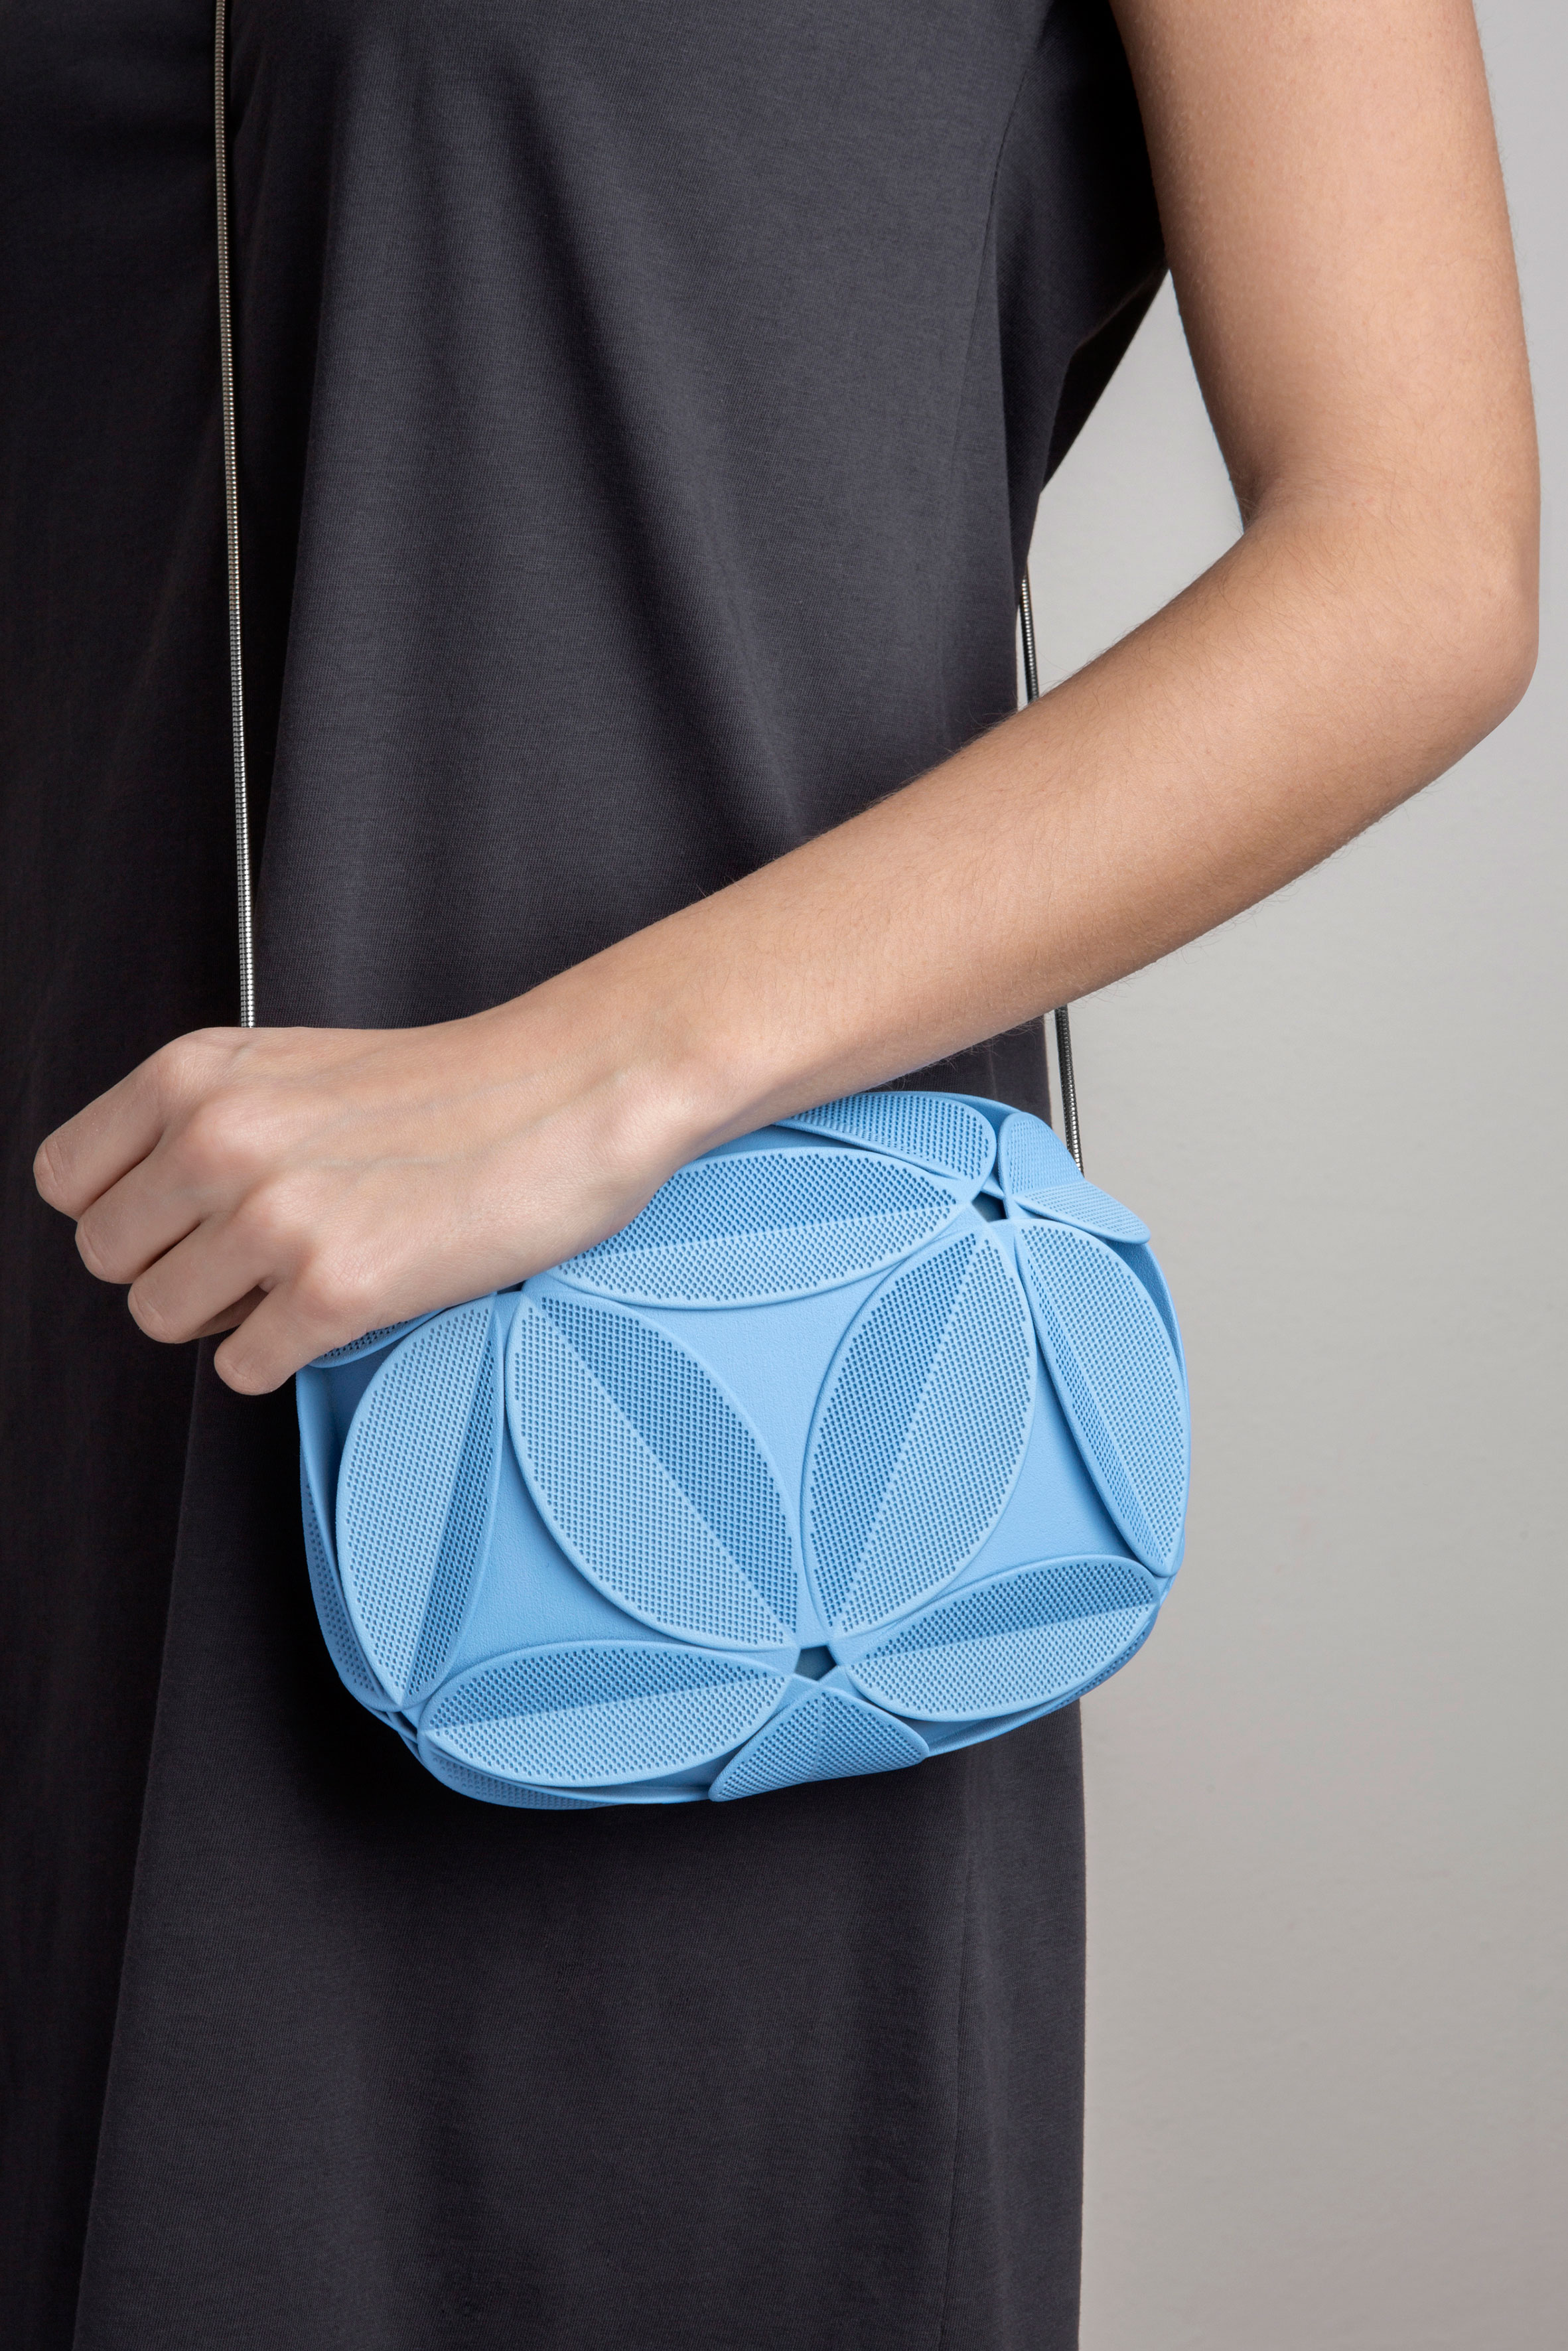 Ivy-3D-Printed-Clutch-Maison-203-05